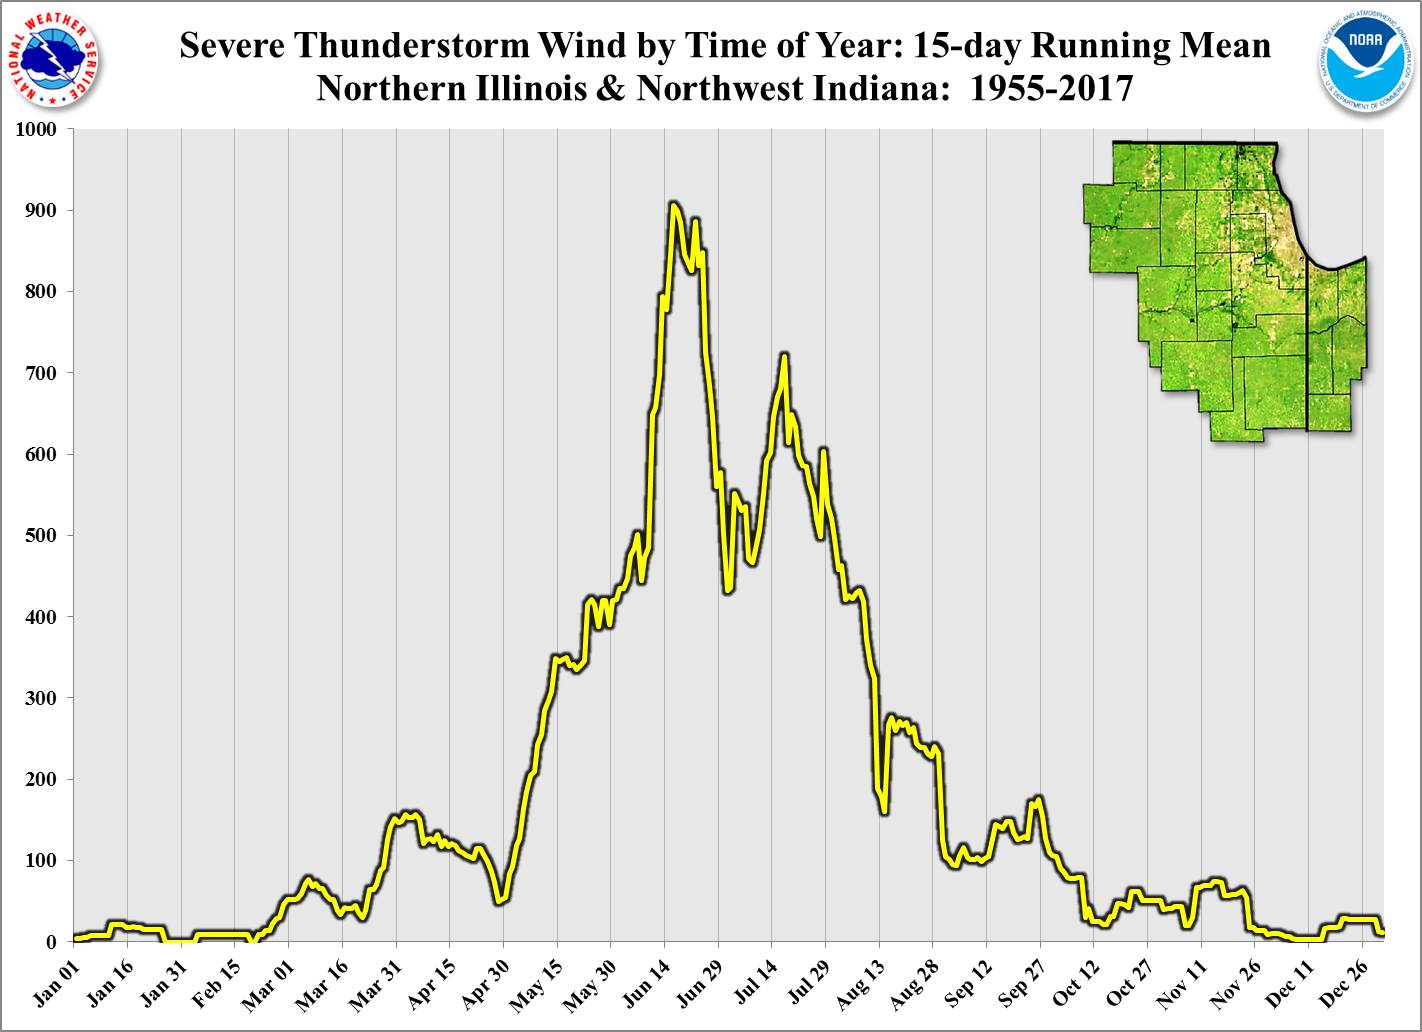 Severe Wind 15-Day Running Mean